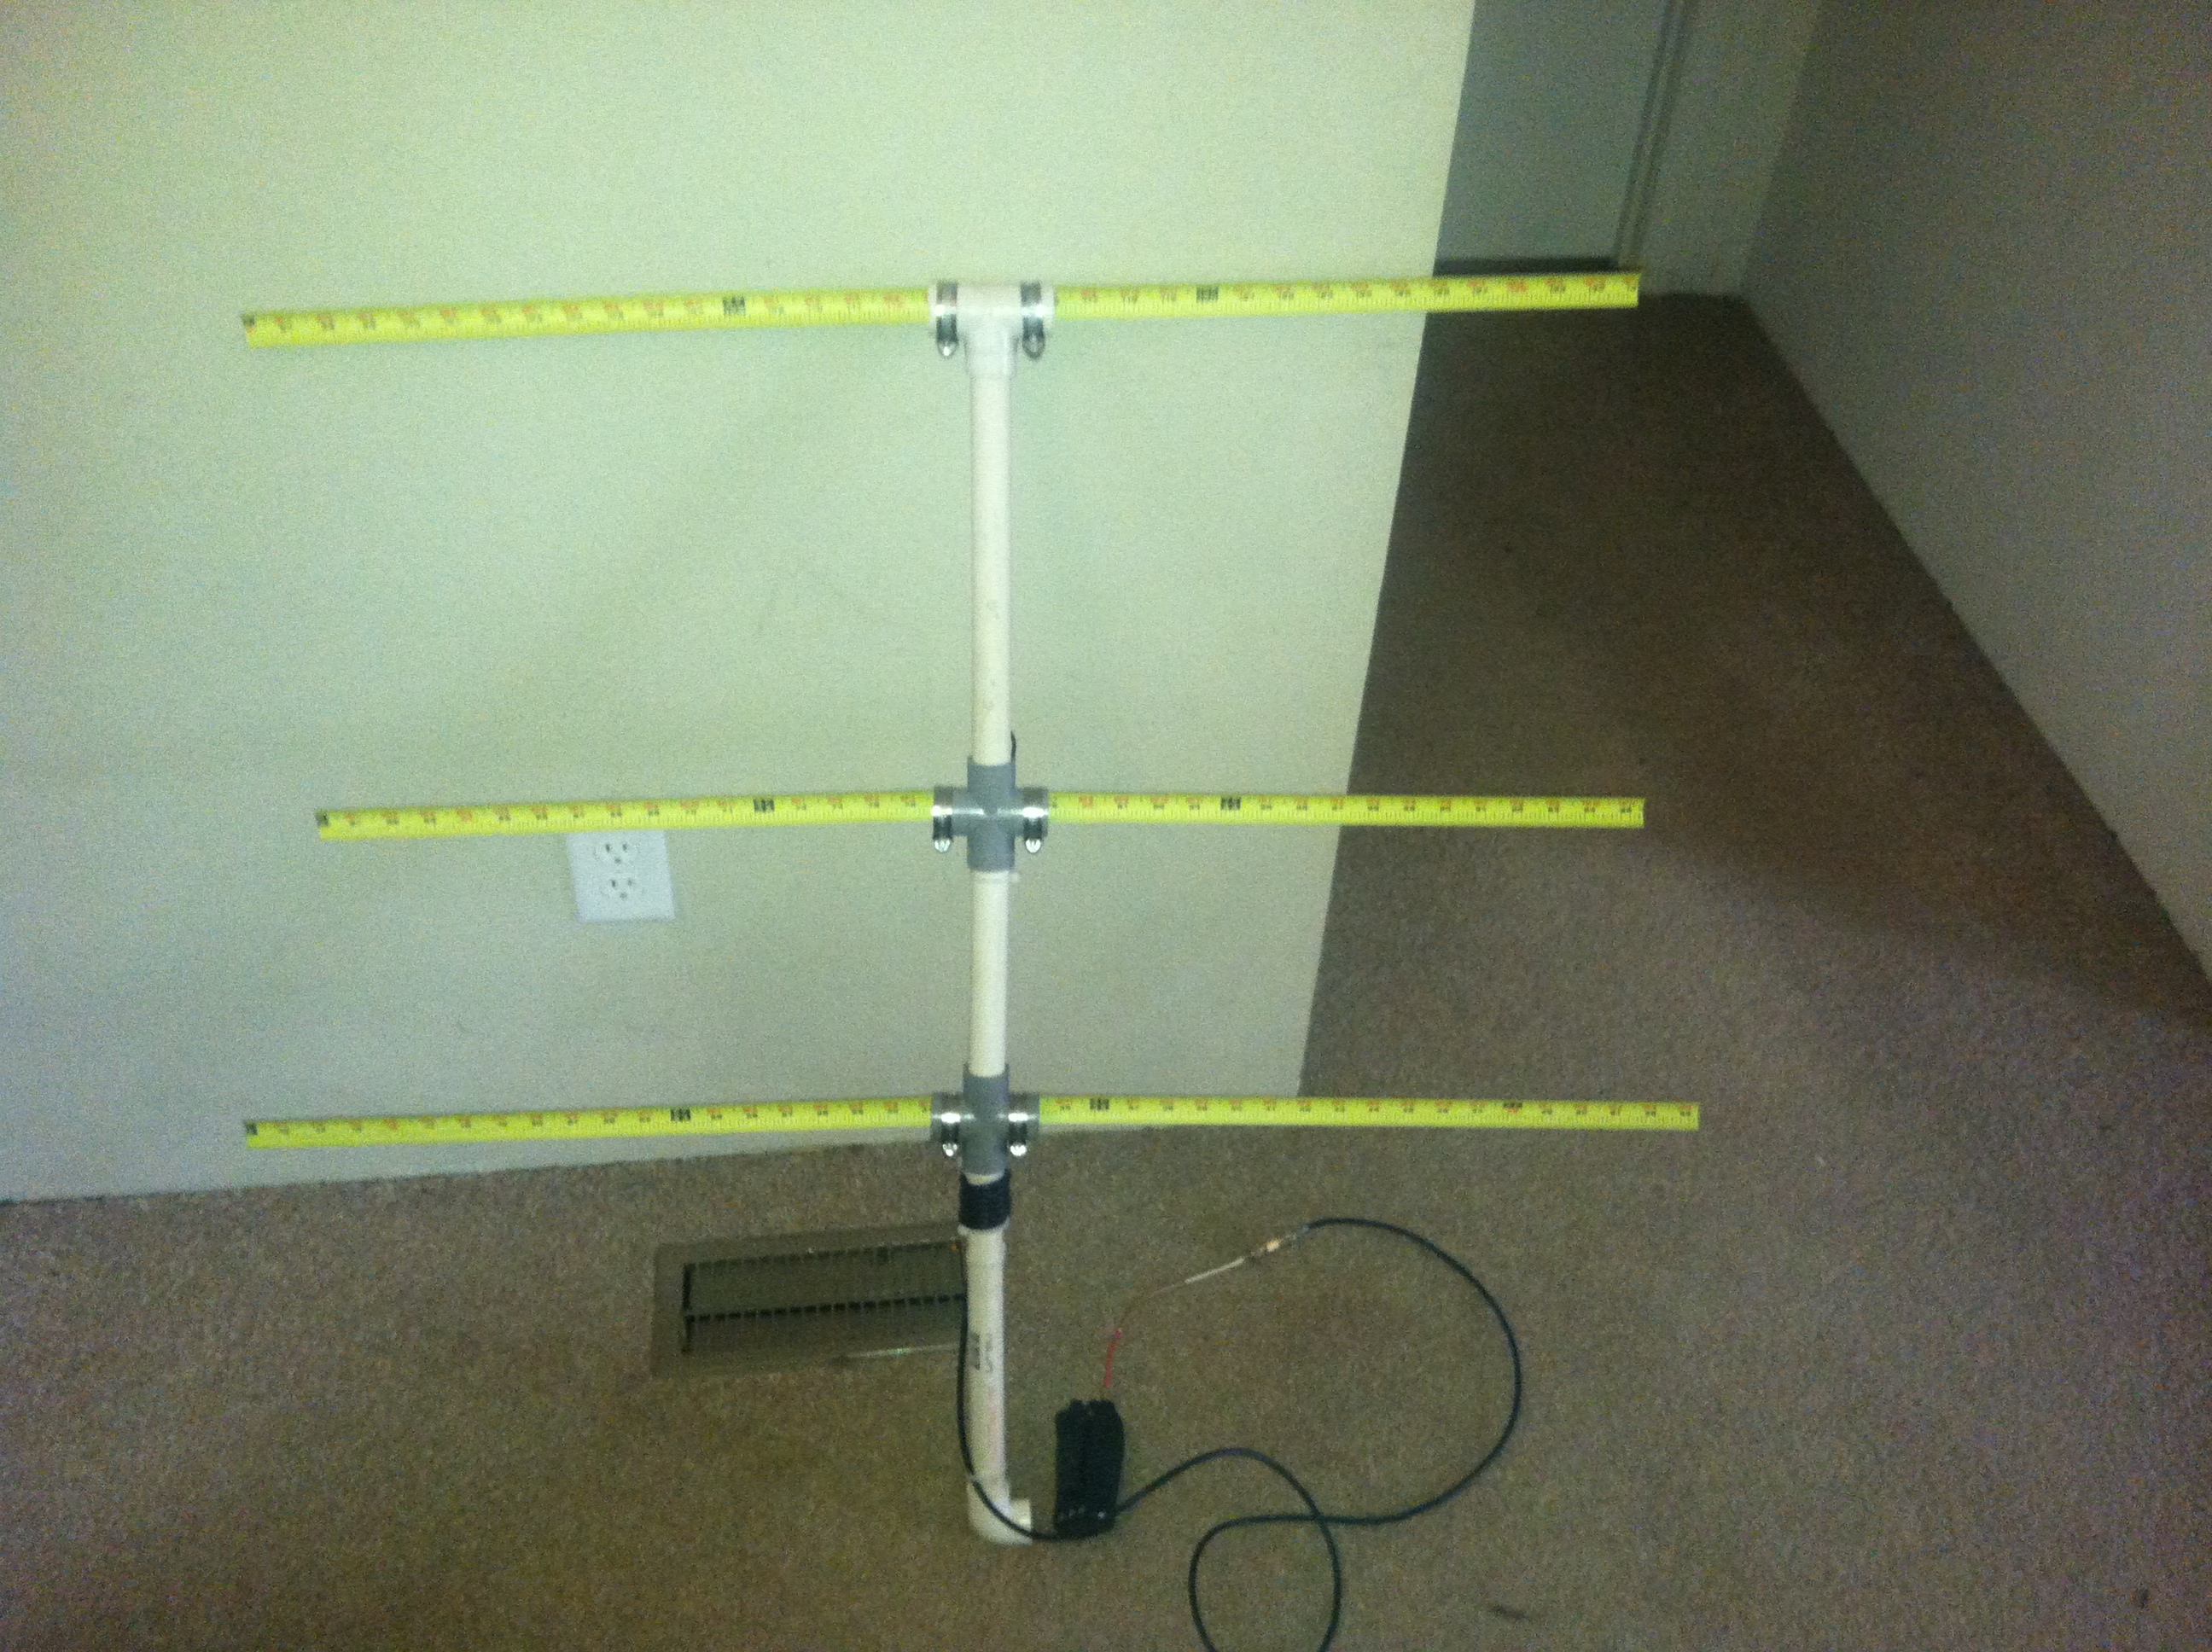 The Tape Measure Antenna: 5 Steps (with Pictures)